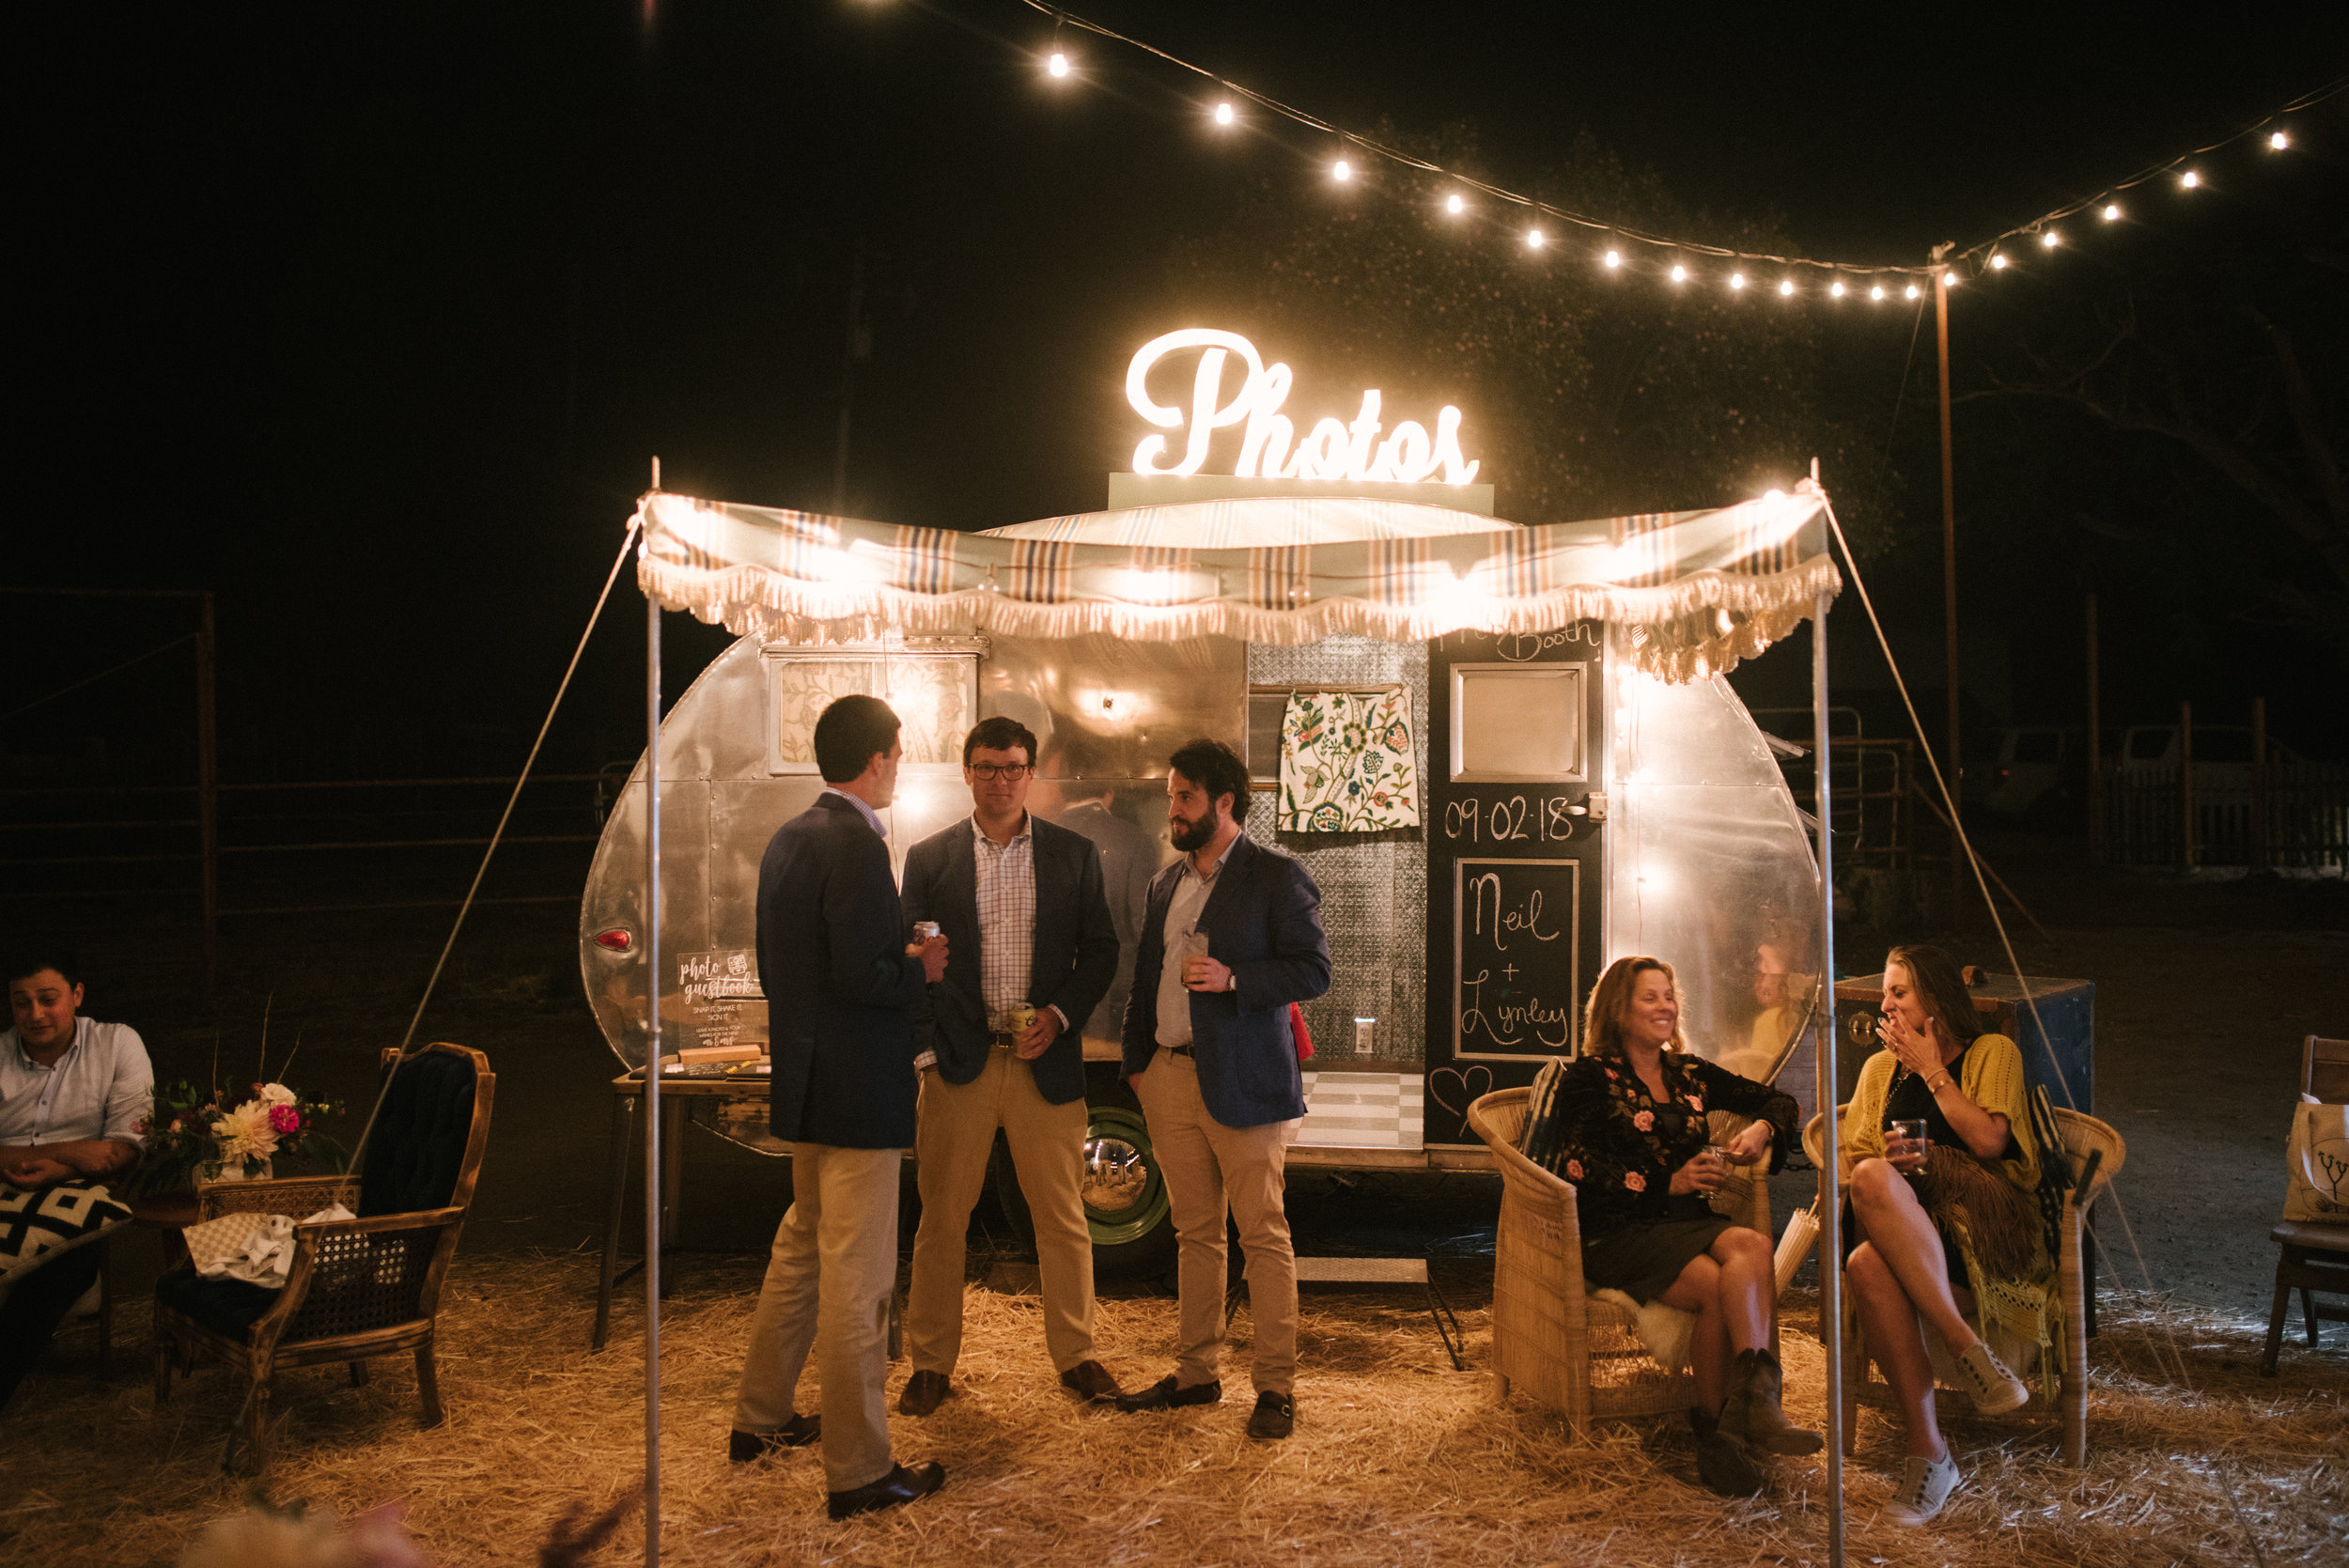 A perfect evening shot of Tinker Tin Trailer Co.'s vintage photo booth trailer and their light up photo sign. The most fun and unique photo booth option in California and the Western United States